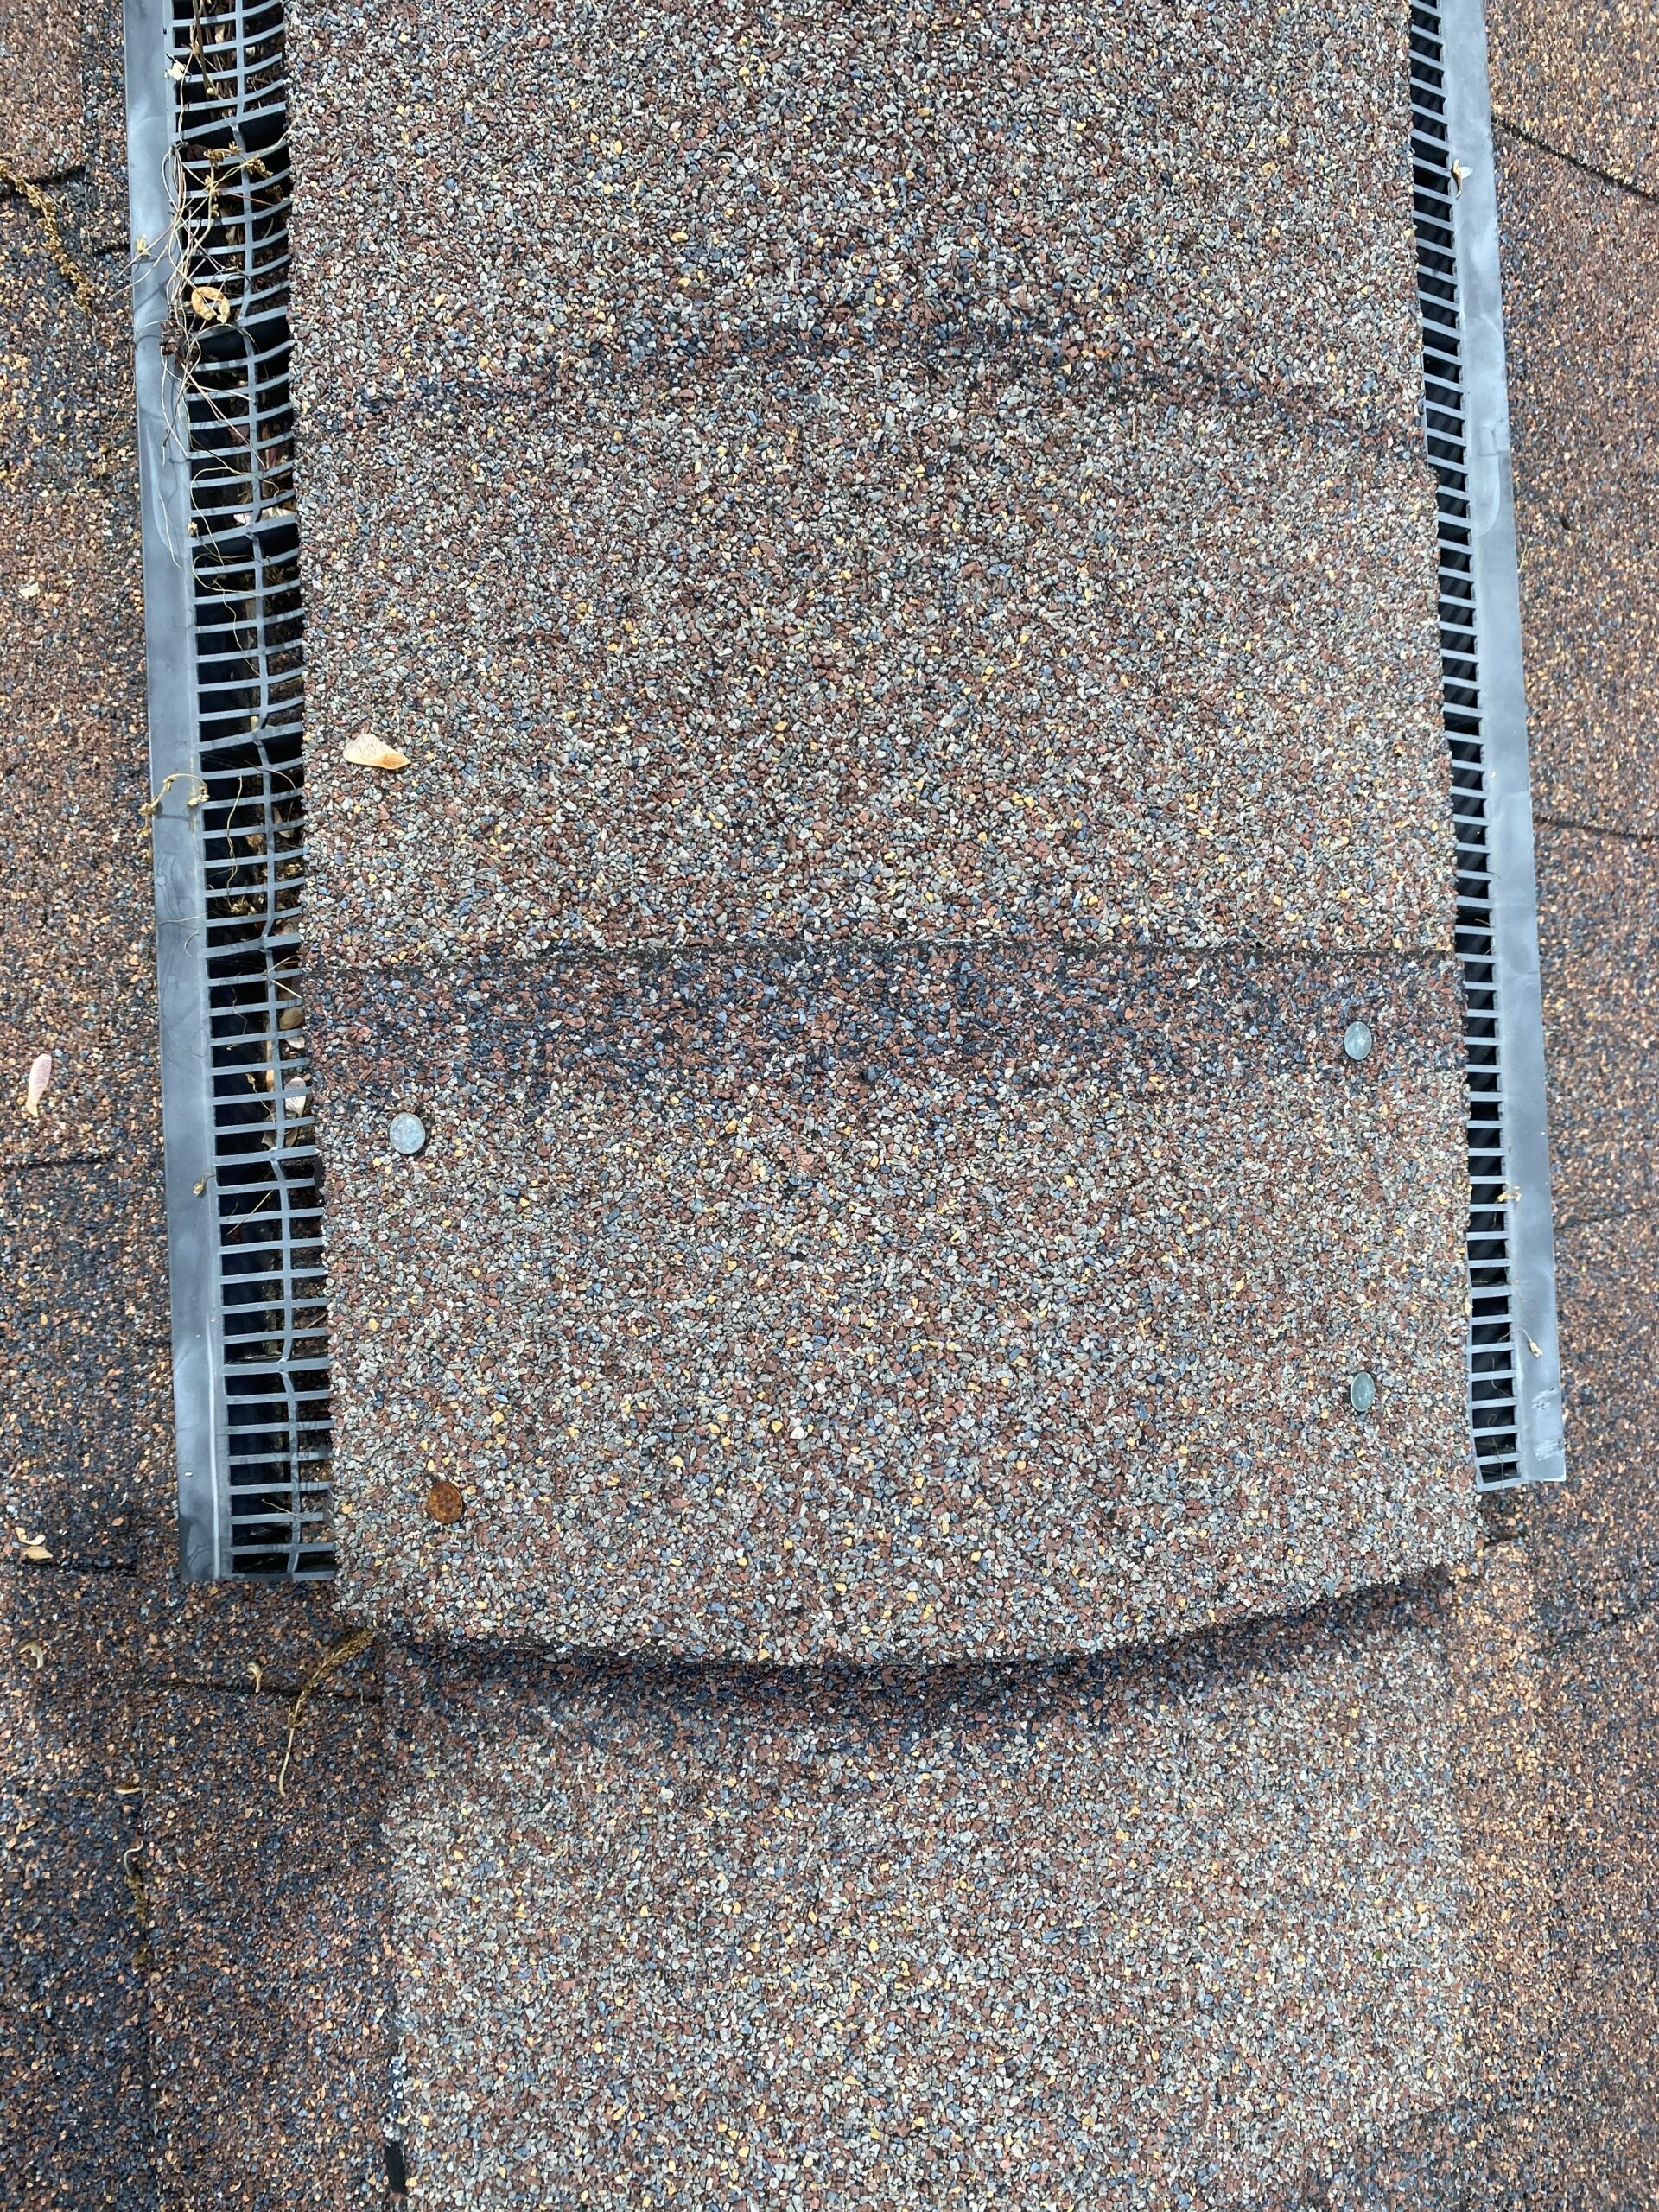 This is a picture of exposed nails ona ridge vent